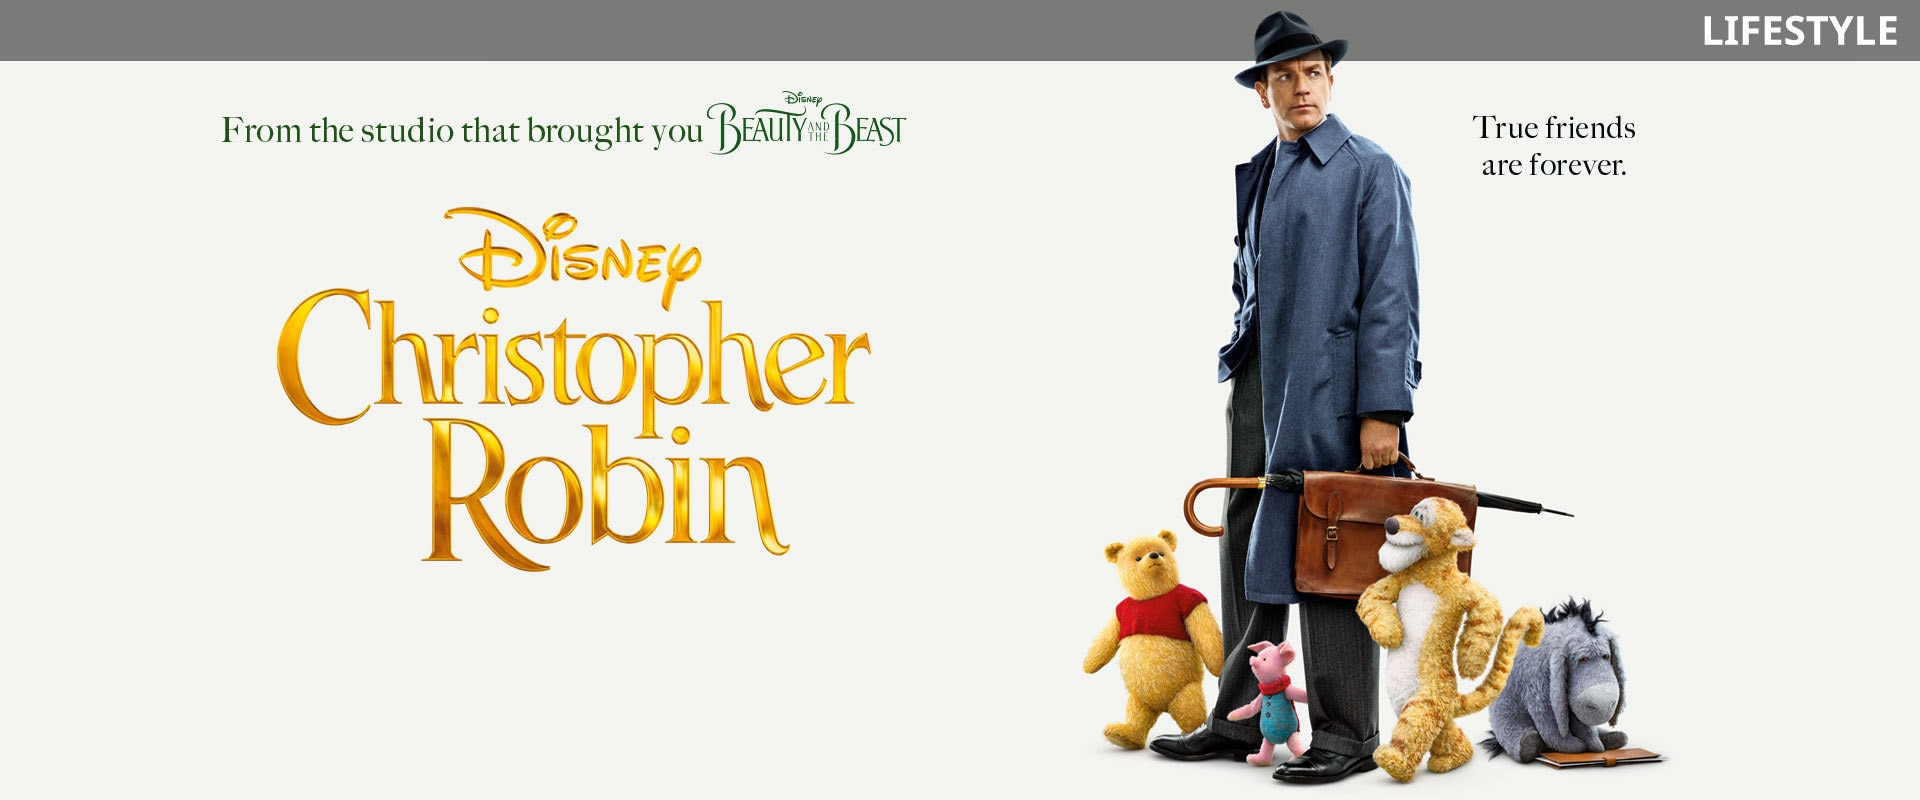 Disney's Christopher Robin | Disney | Lifestyle | Homepage | Movies